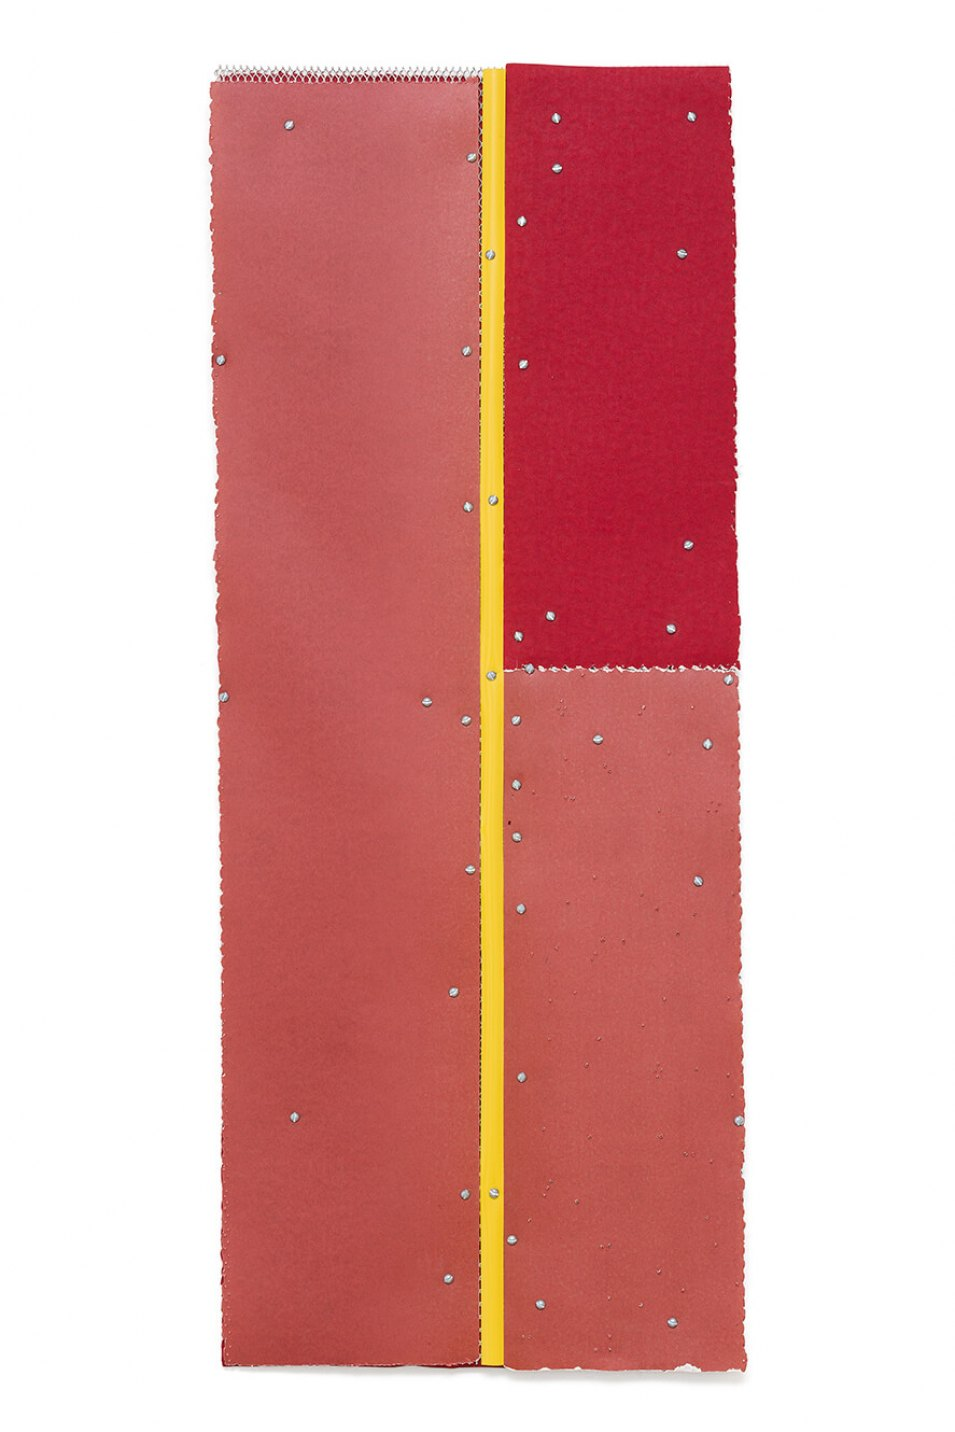 Alessandro Carano, <em>Chronodrama</em>, 2017, collage: sandpaper, grid of aluminum, measuring tape and screw, 100 × 40 cm - Mendes Wood DM